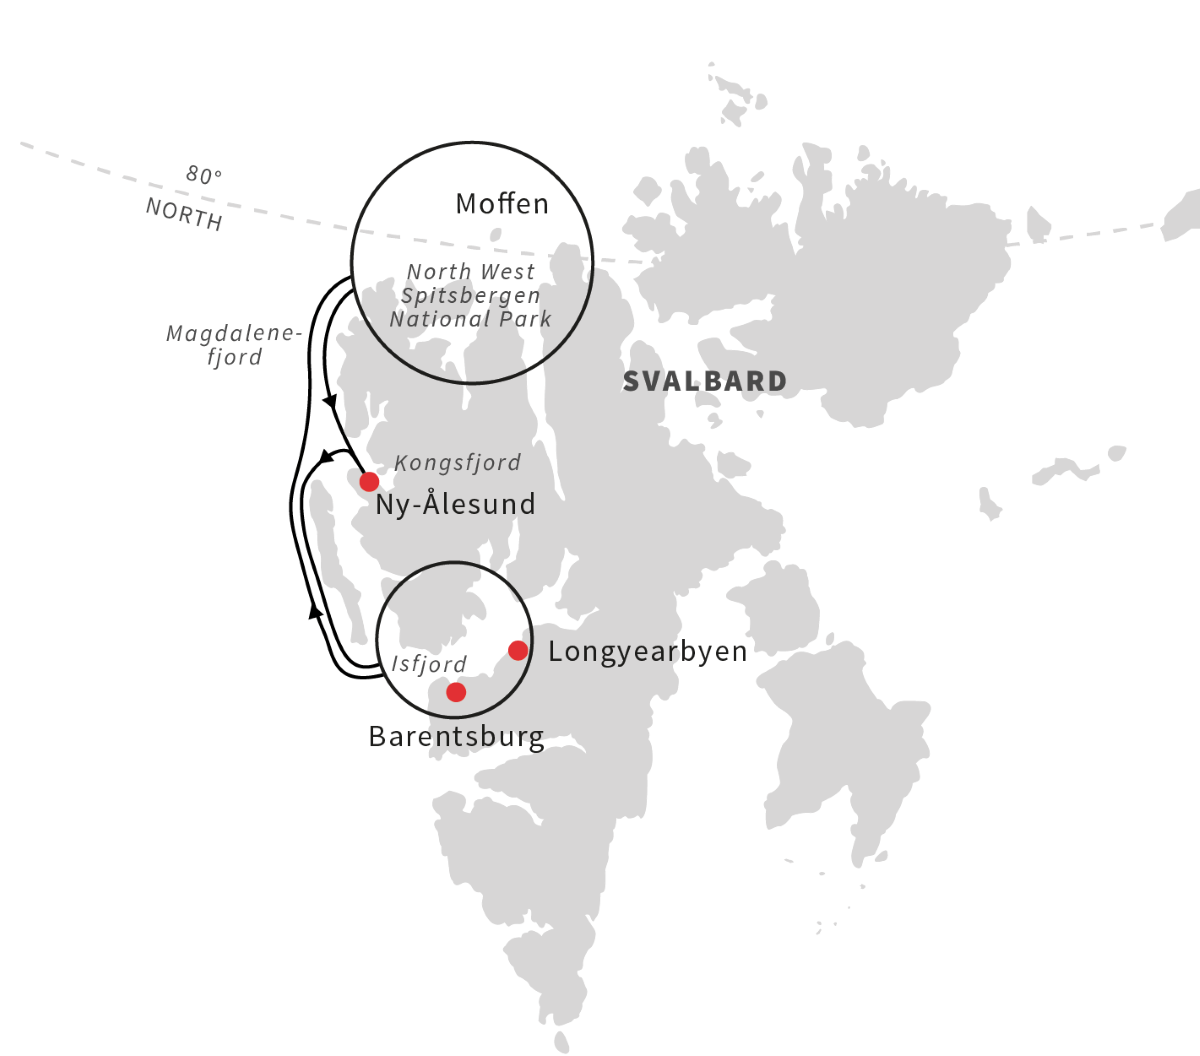 Svalbard - In the Realm of the Polar Bear